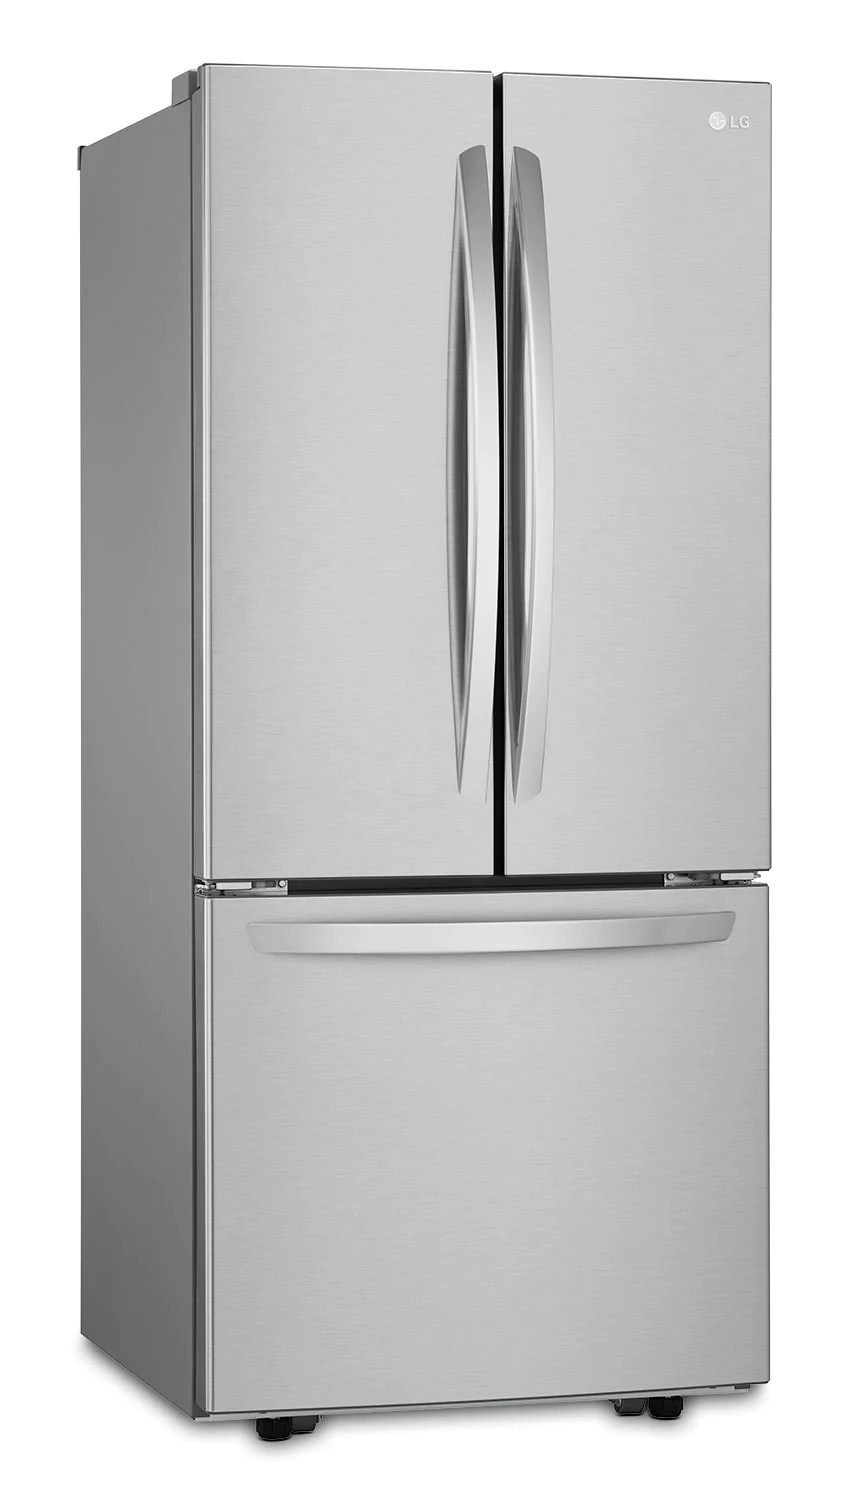 Refrigerateur Lg Lg 21 8 Cu Ft French Door Bottom Mount Refrigerator Stainless Steel